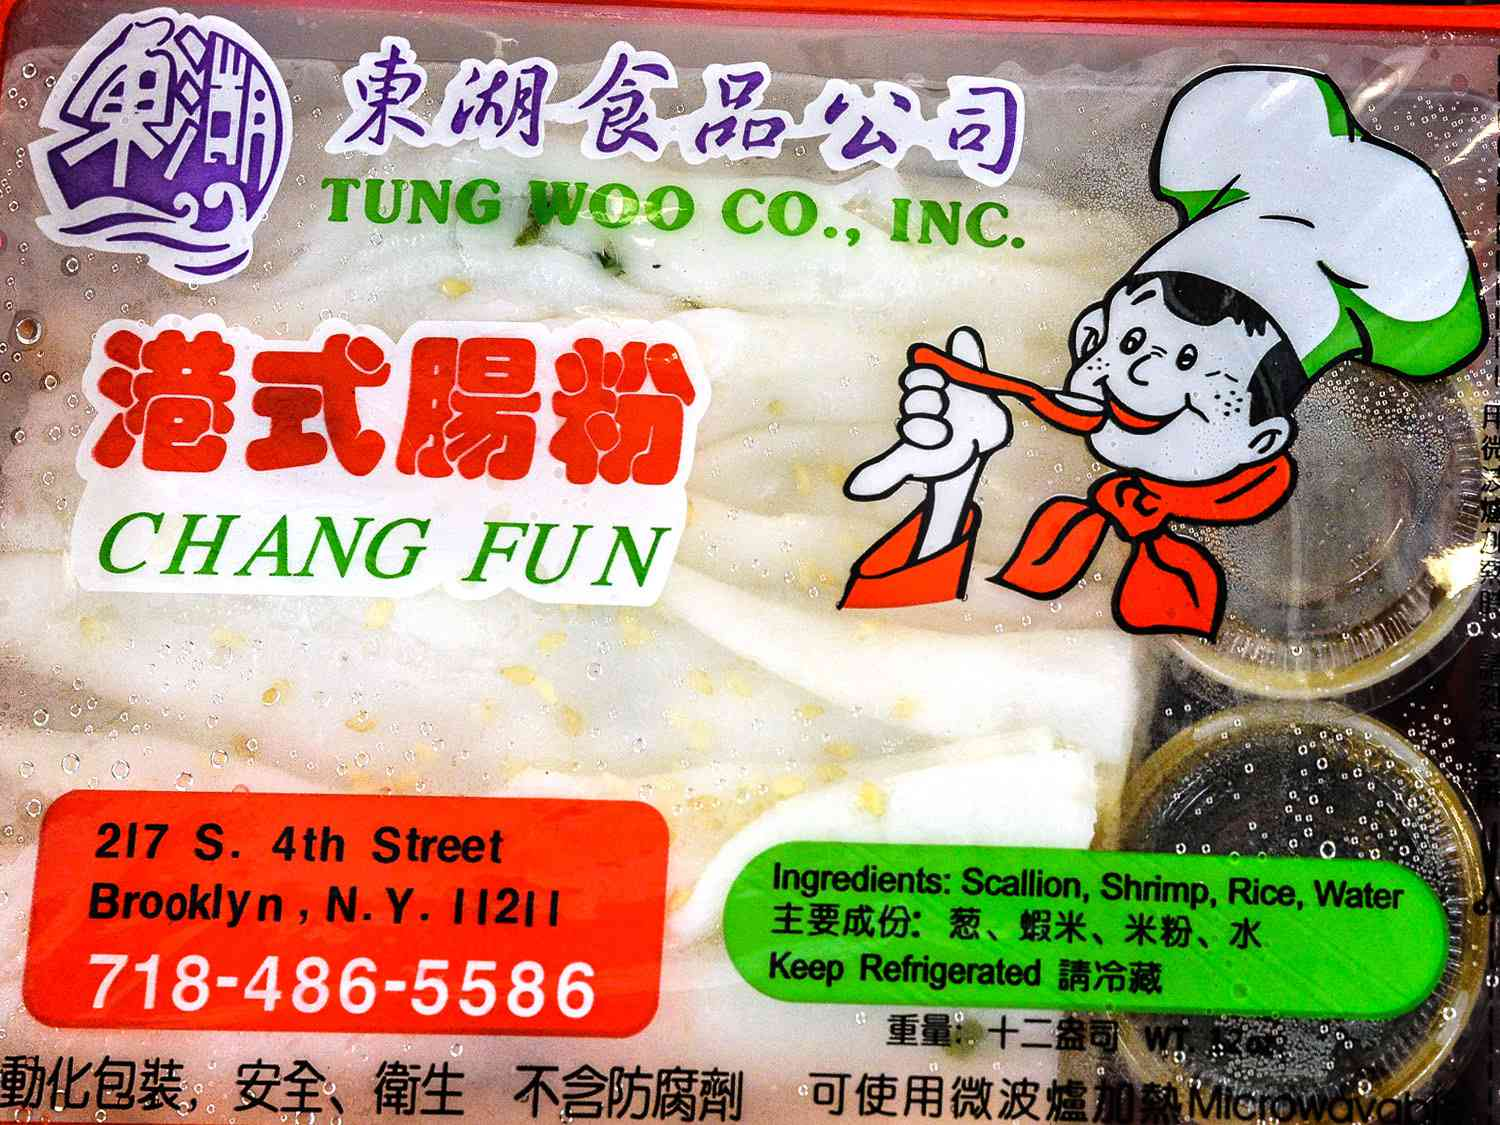 20140724-asian-noodle-guide-prepared-chee-cheong-fun-kevin-cox-2-edit.jpg